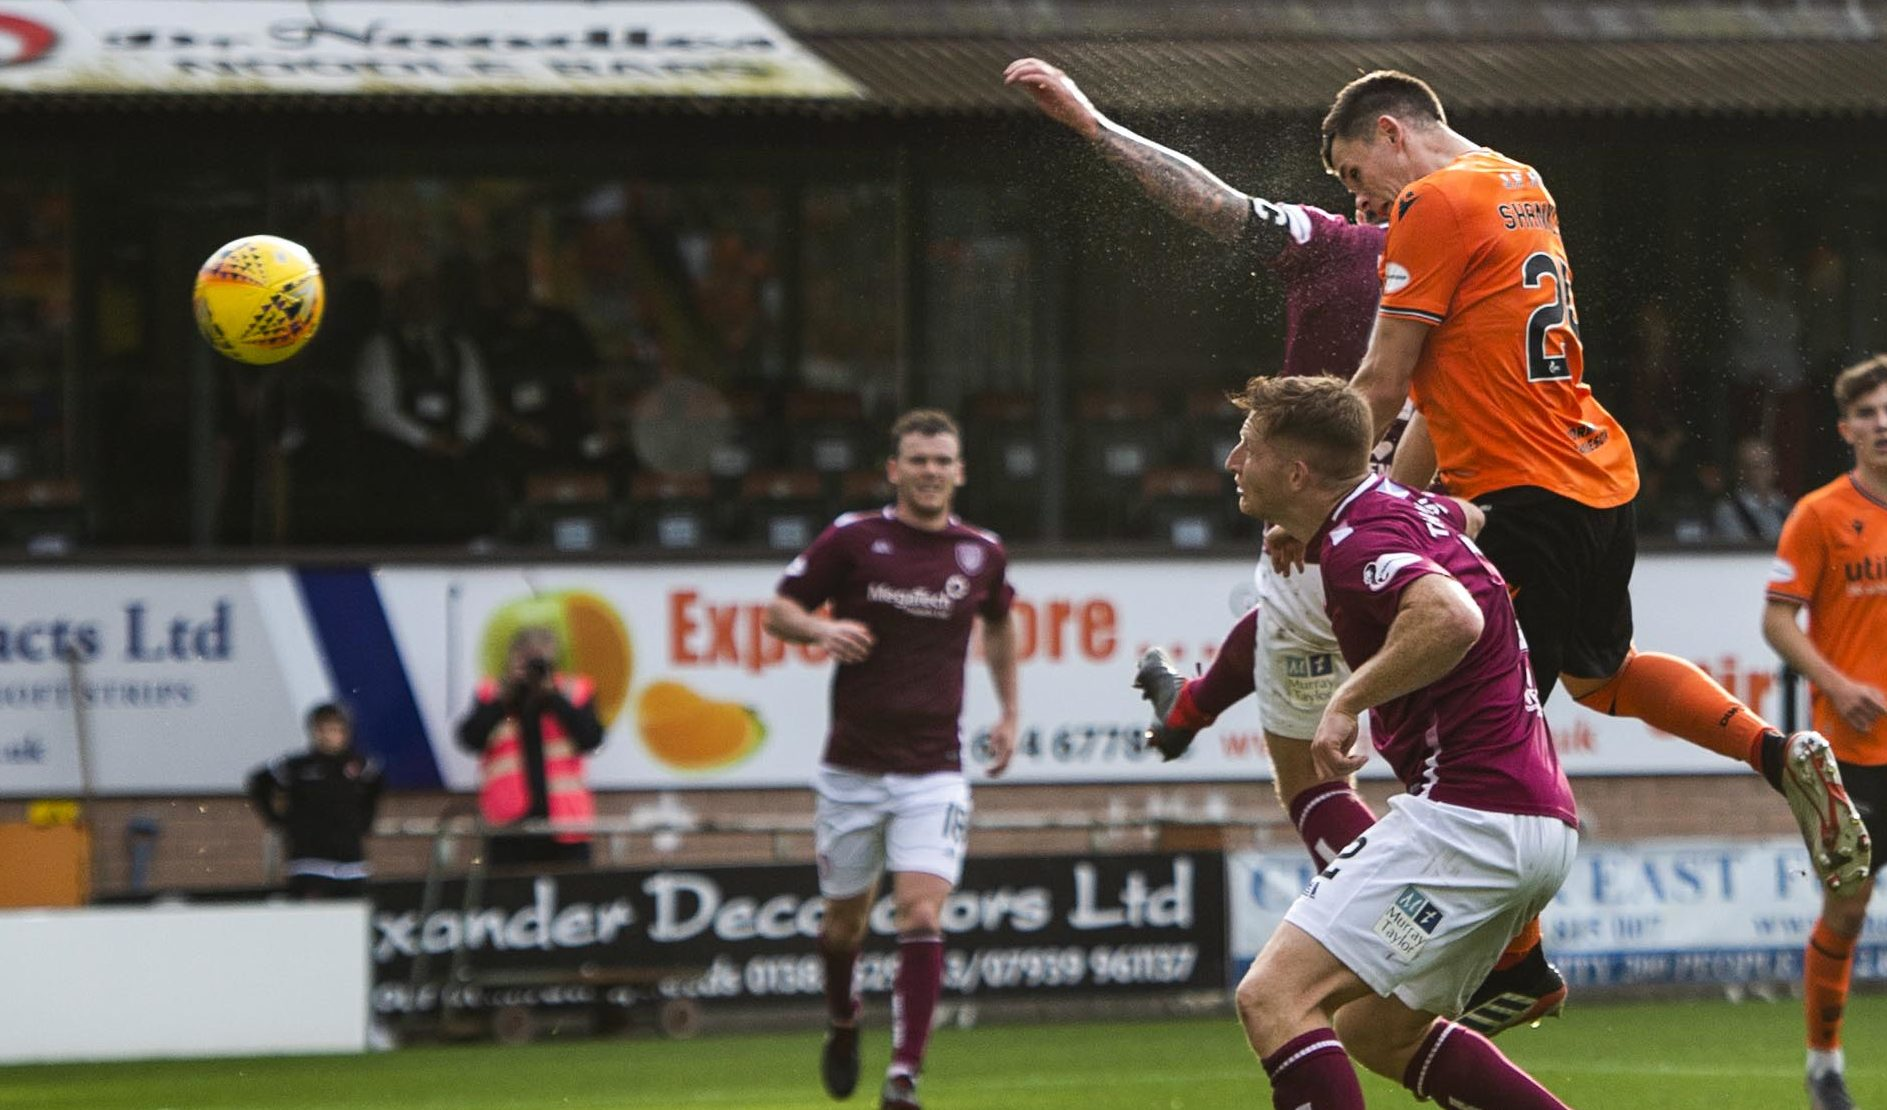 Lawrence Shankland heads home the winner in stoppage-time.